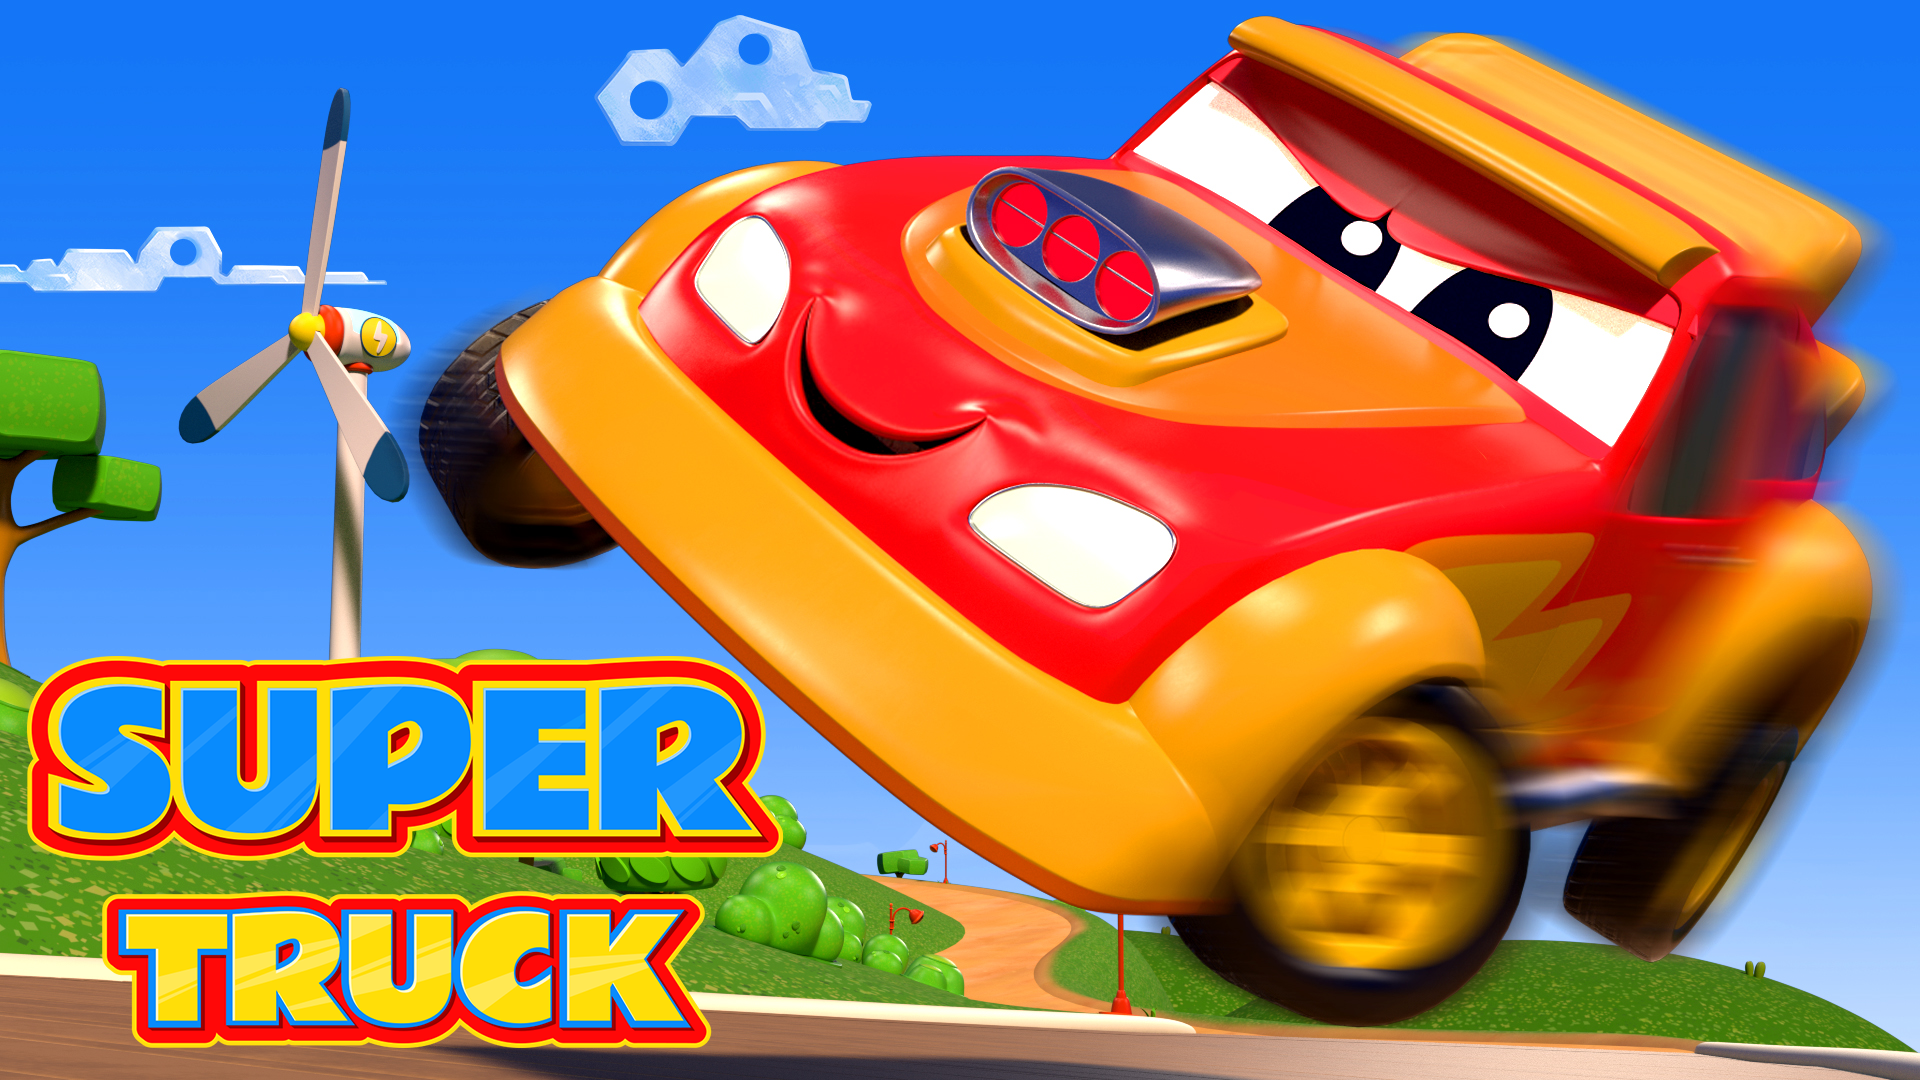 Super Truck - Carl the Transformer on Amazon Prime Video UK